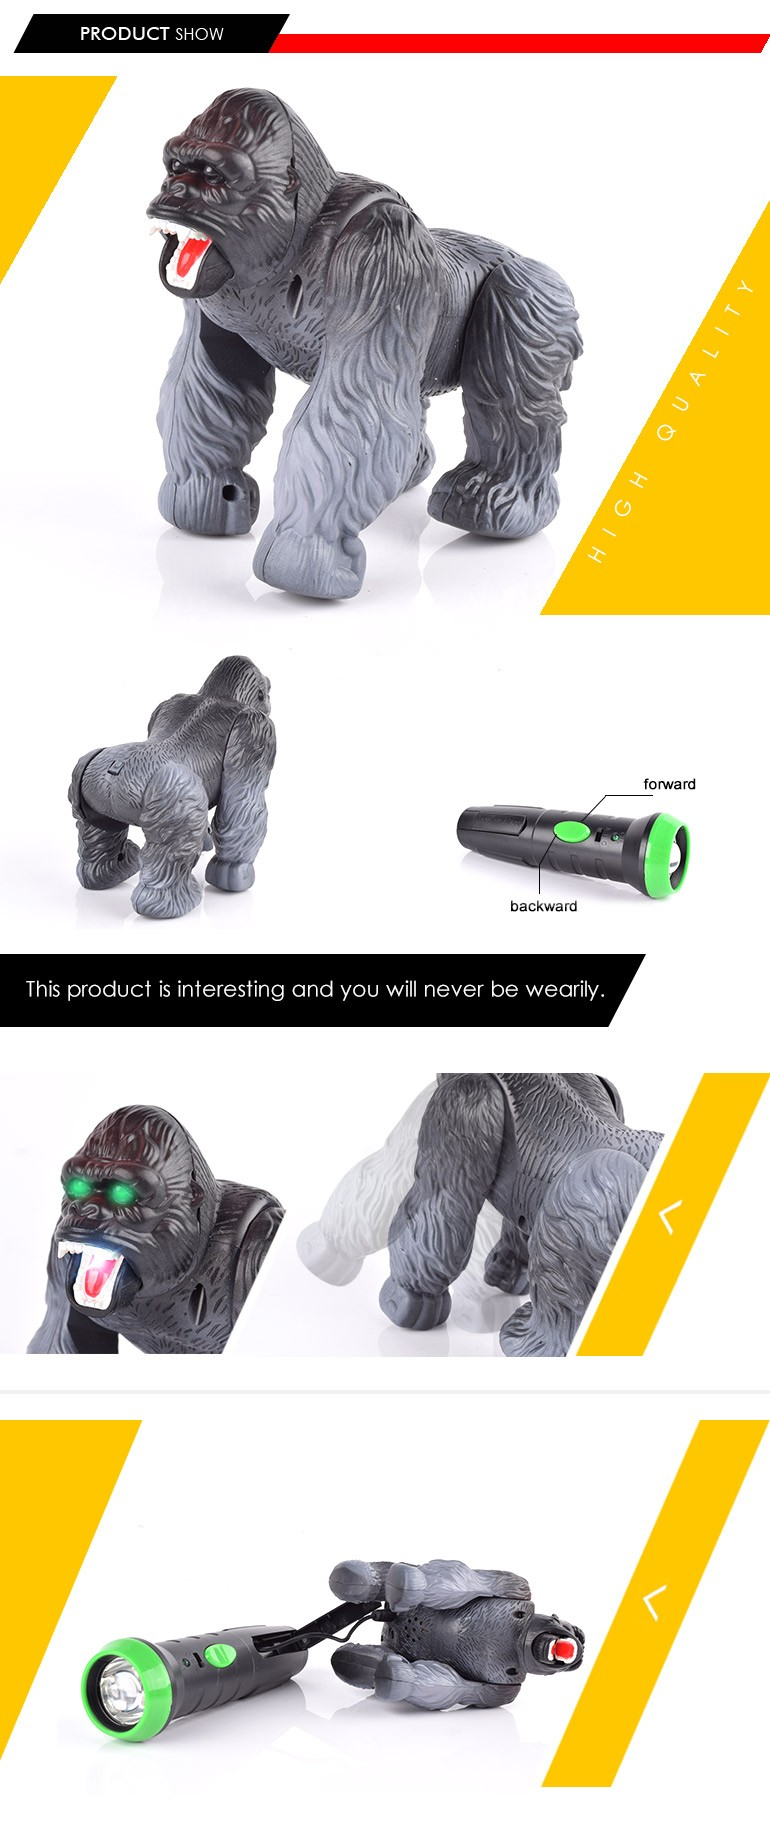 2017 trend 2ch remote control orangutan plastic forest animals toys with low moq